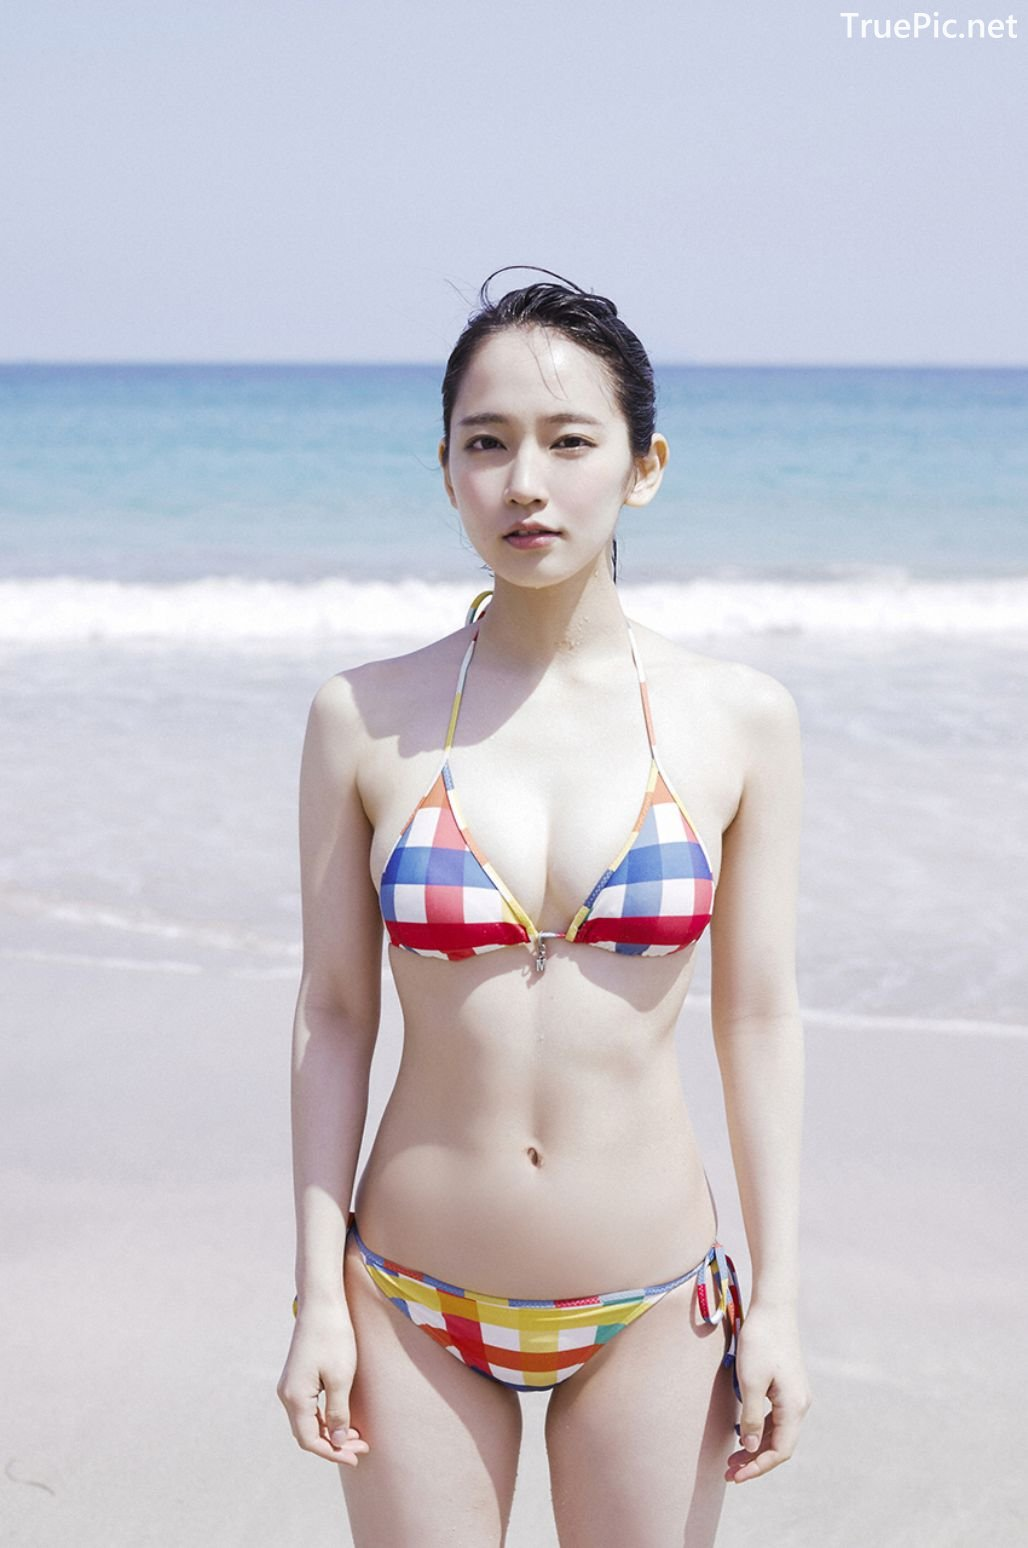 Image-Japanese-Actress-And-Model-Riho-Yoshioka-Pure-Beauty-Of-Sea-Goddess-TruePic.net- Picture-6